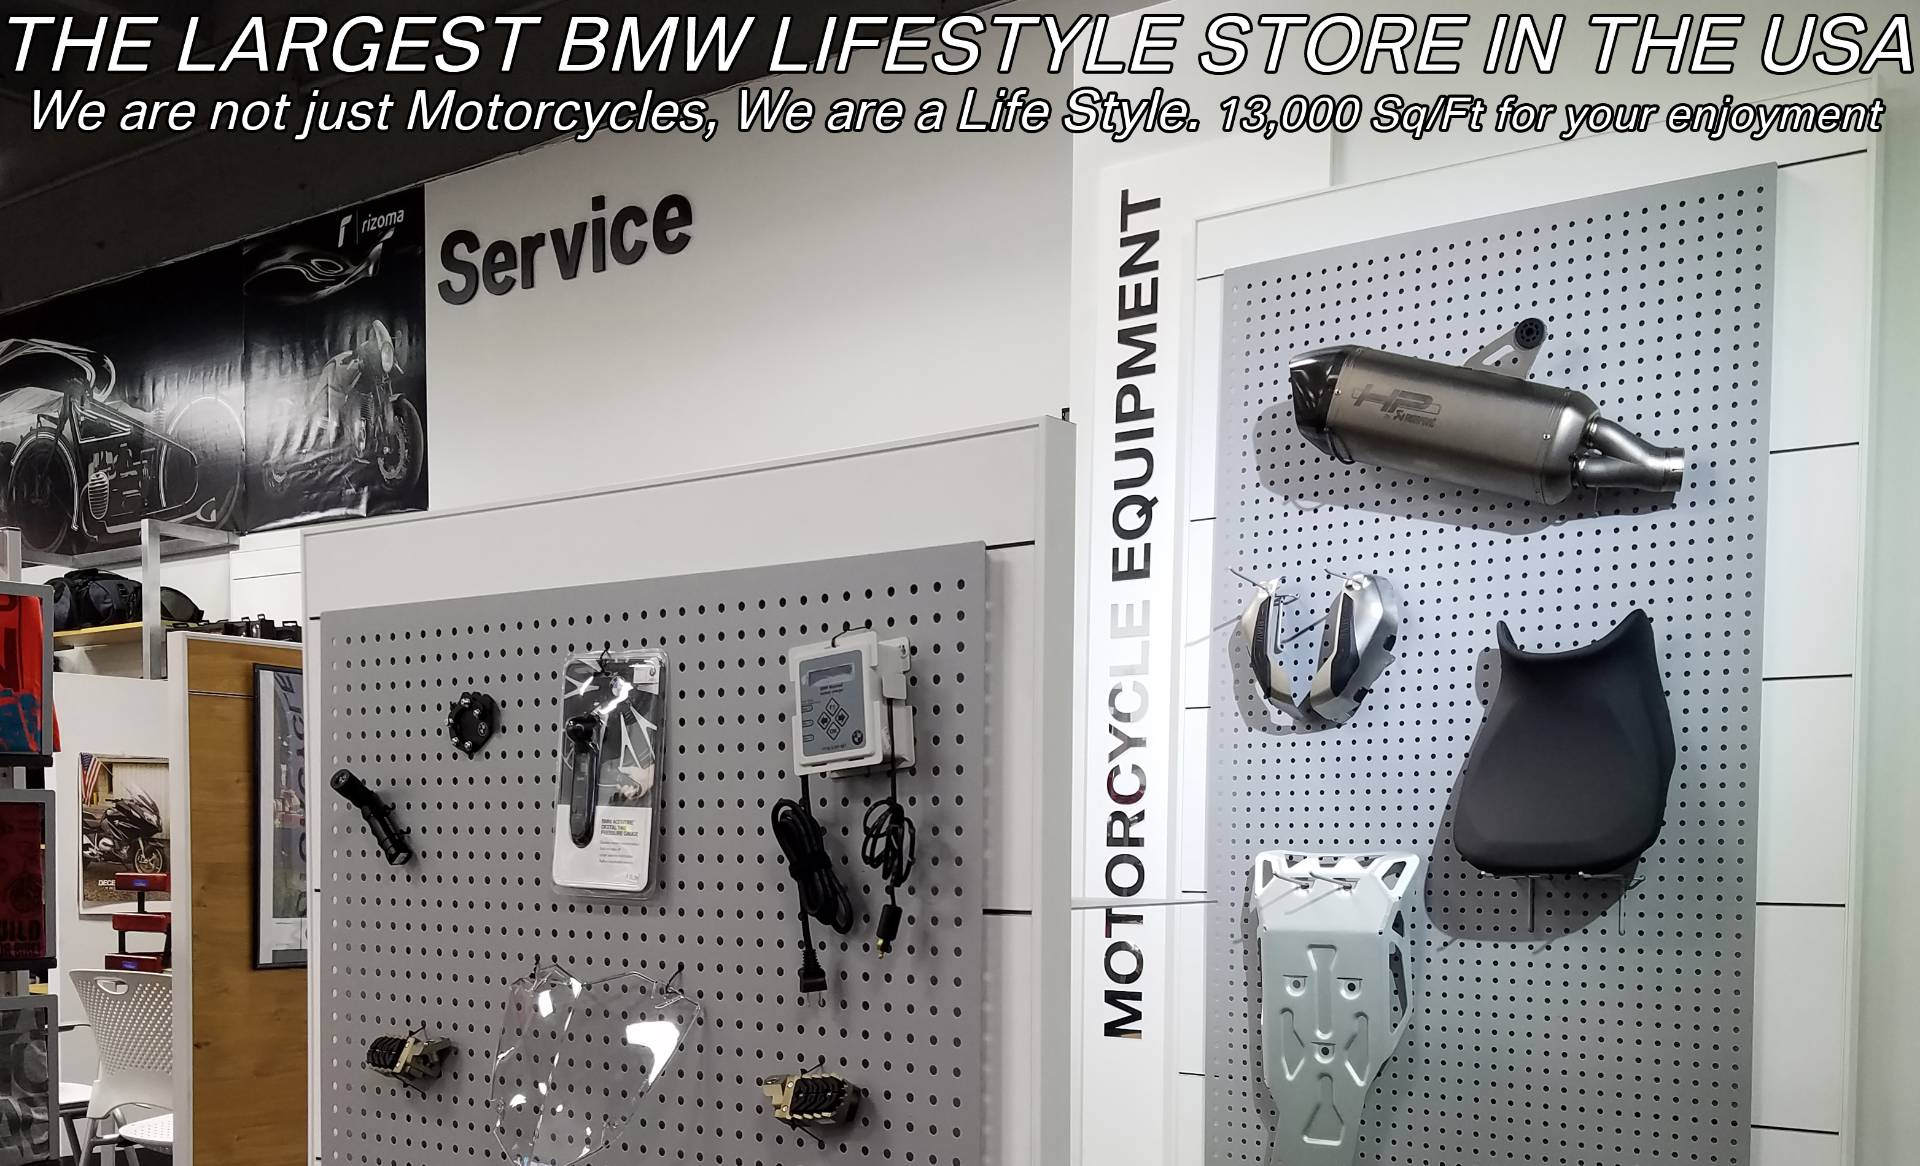 New 2019 BMW R 1250 GS for sale, New BMW for sale R 1250GS, New BMW Motorcycle R1250GS for sale, new BMW 1250GS, R1250GS, GS. BMW Motorcycles of Miami, Motorcycles of Miami, Motorcycles Miami, New Motorcycles, Used Motorcycles, pre-owned. #BMWMotorcyclesOfMiami #MotorcyclesOfMiami. - Photo 66